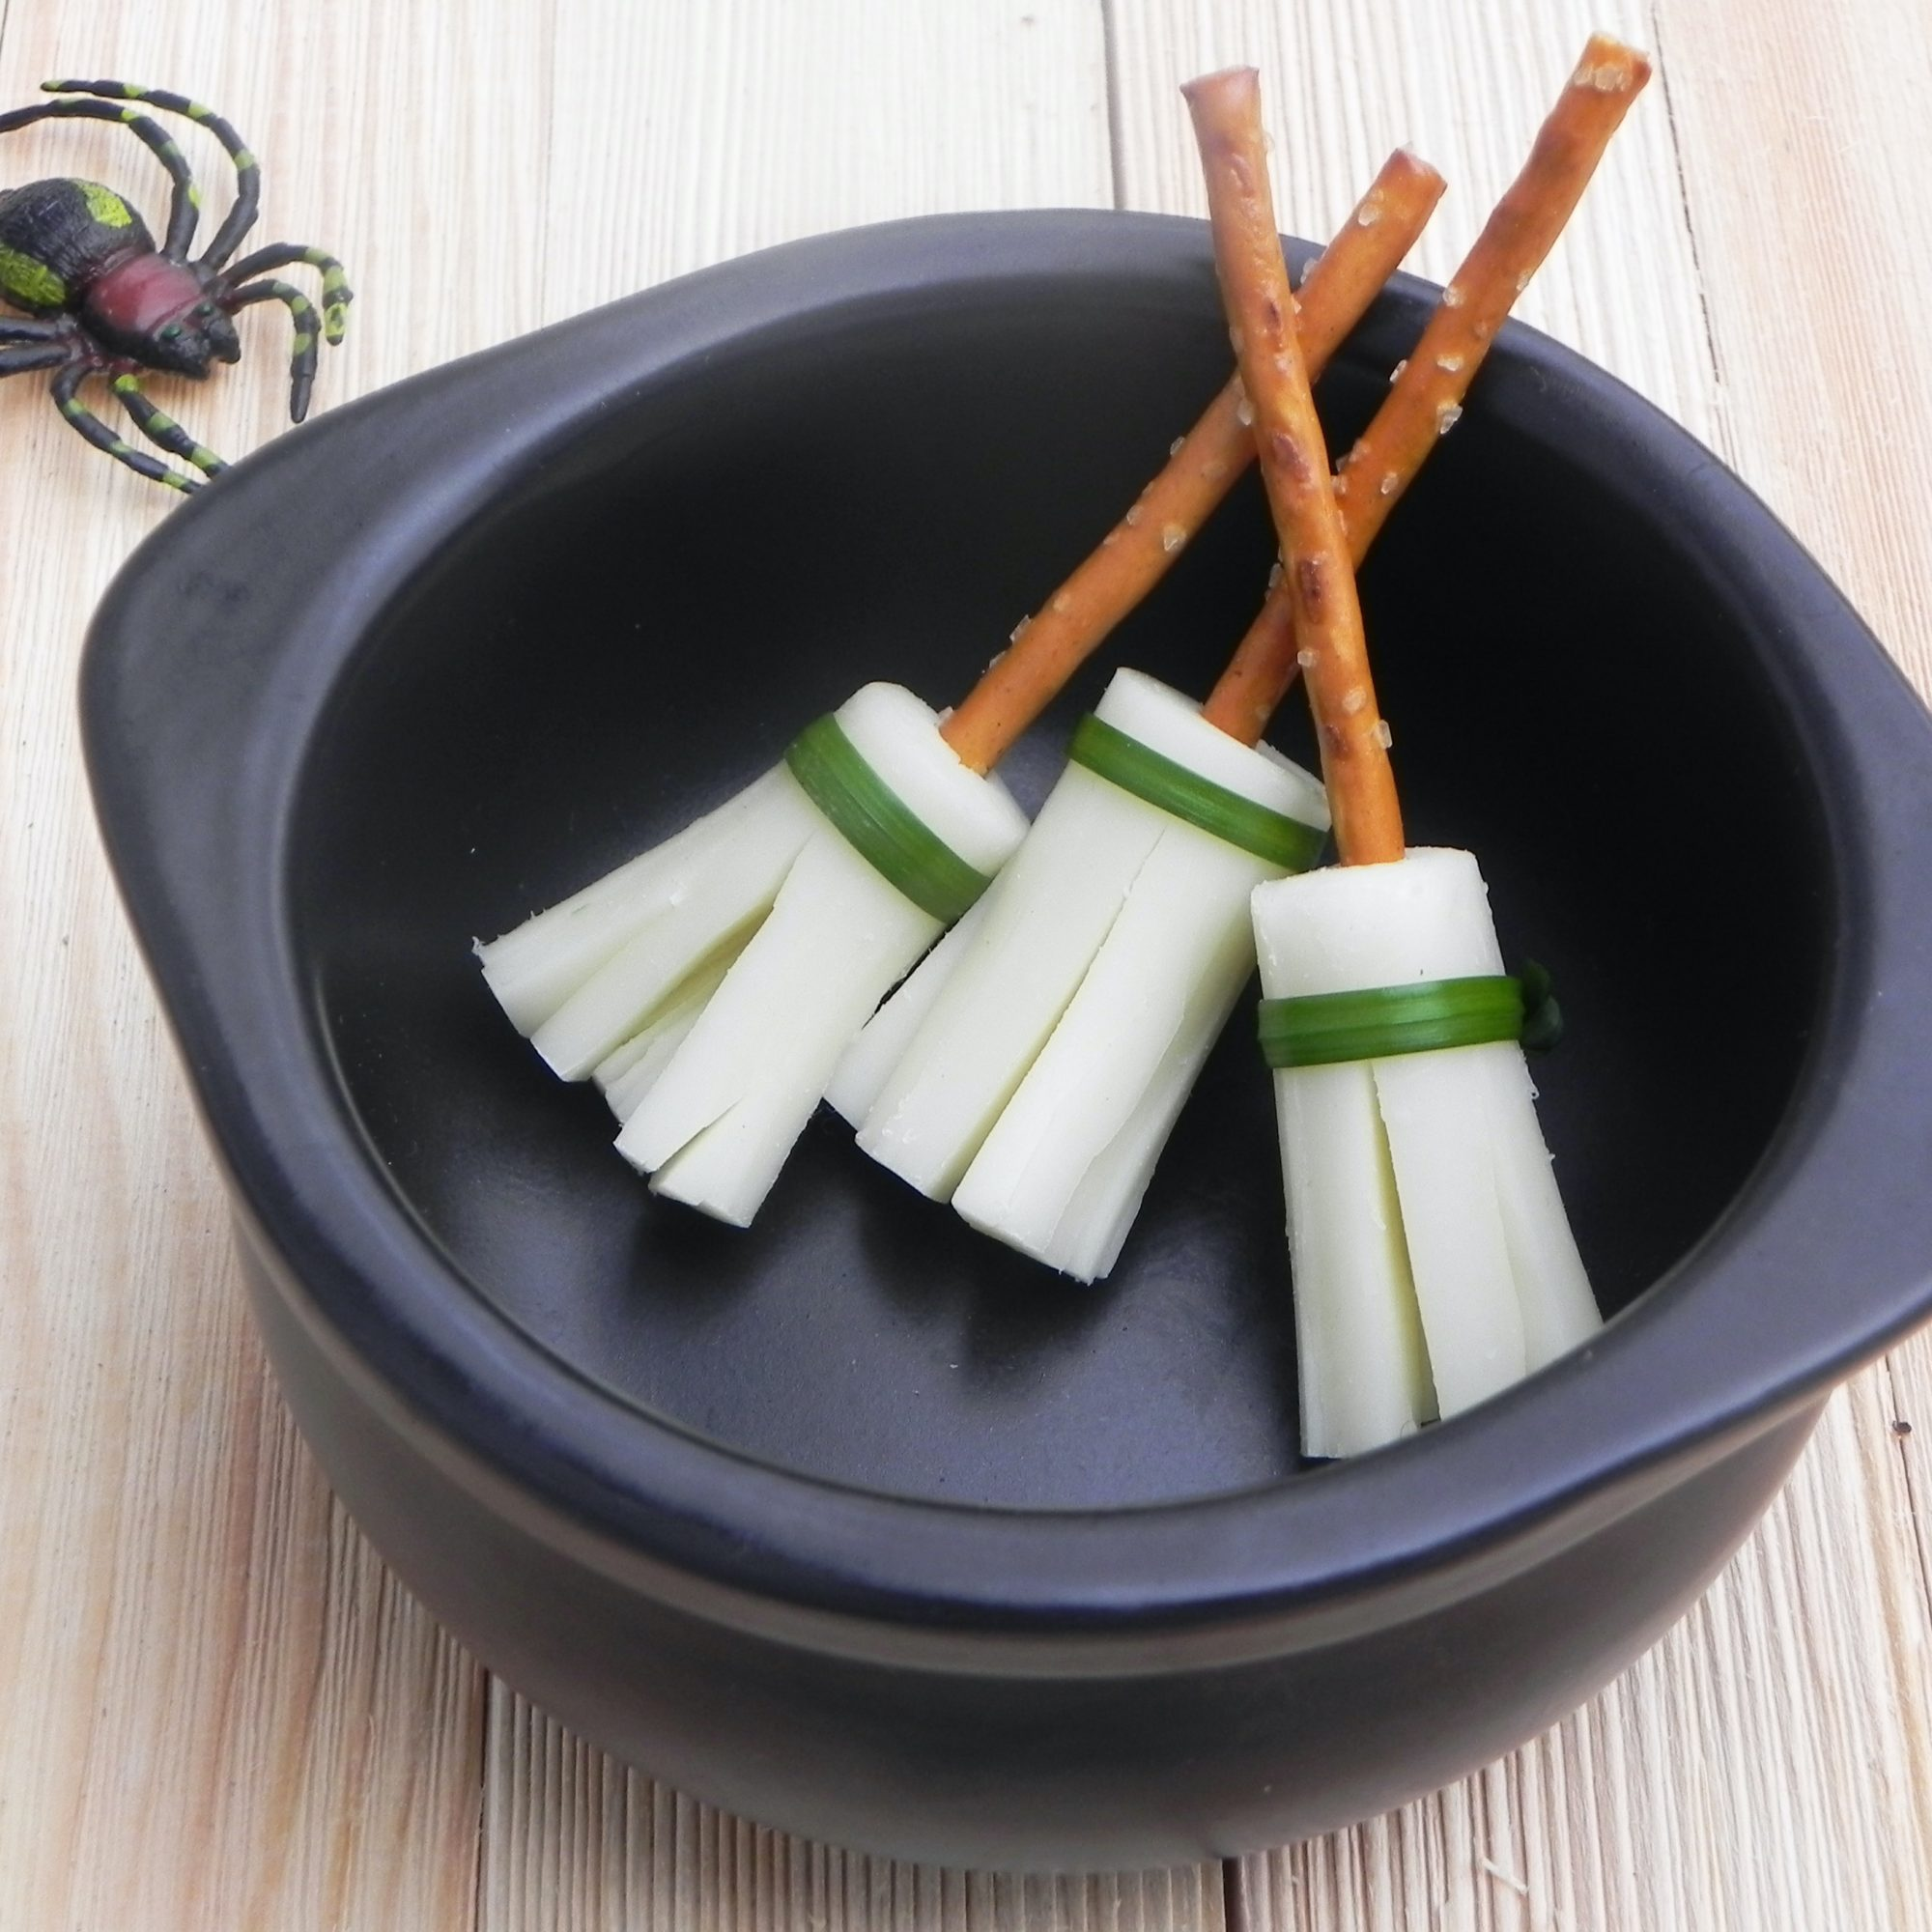 string cheese and pretzel broomsticks in a black bowl